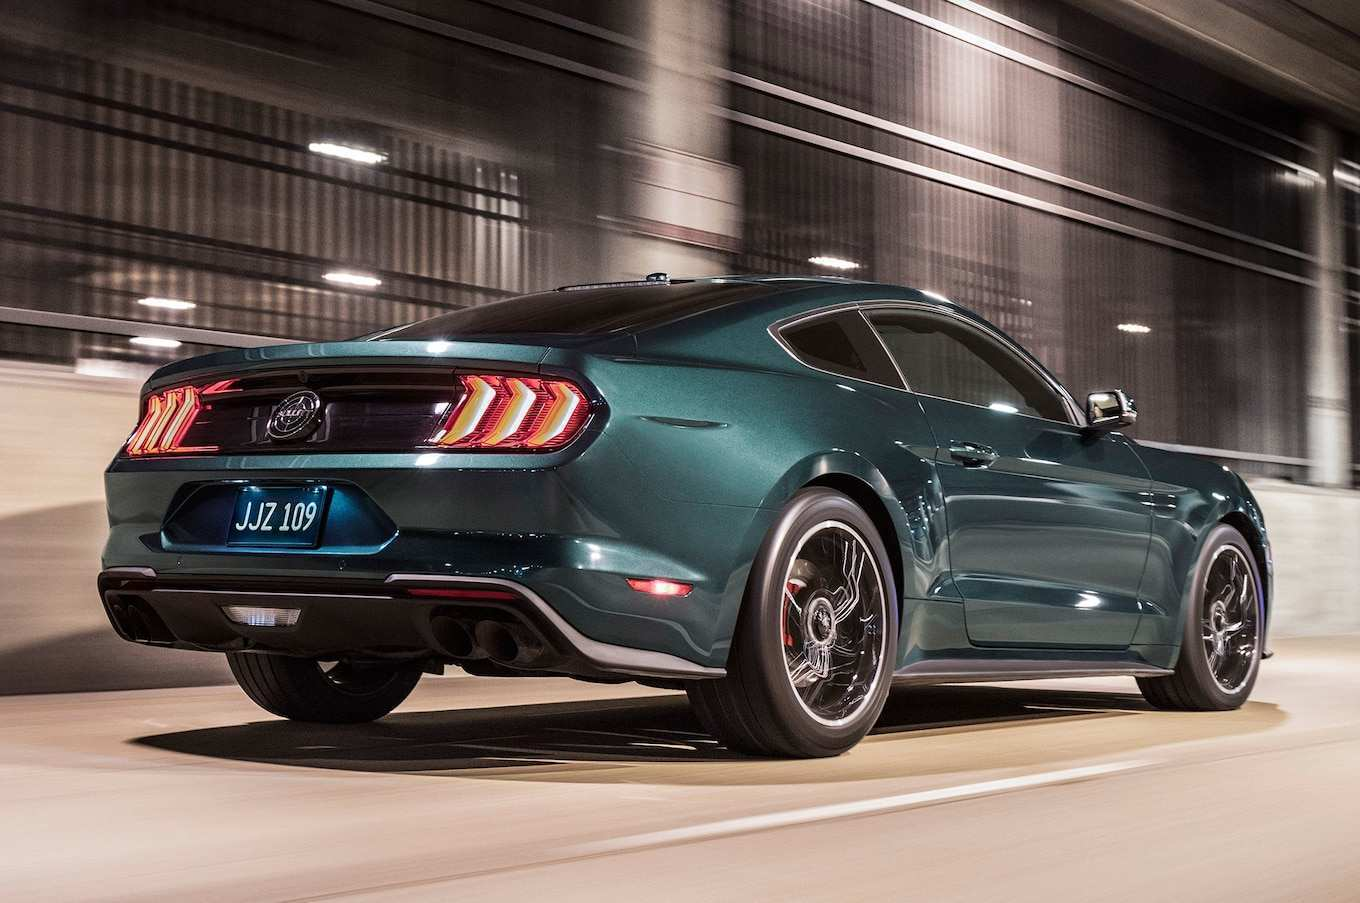 80 Best Review 2019 Ford Mustang Boss 302 Review for 2019 Ford Mustang Boss 302